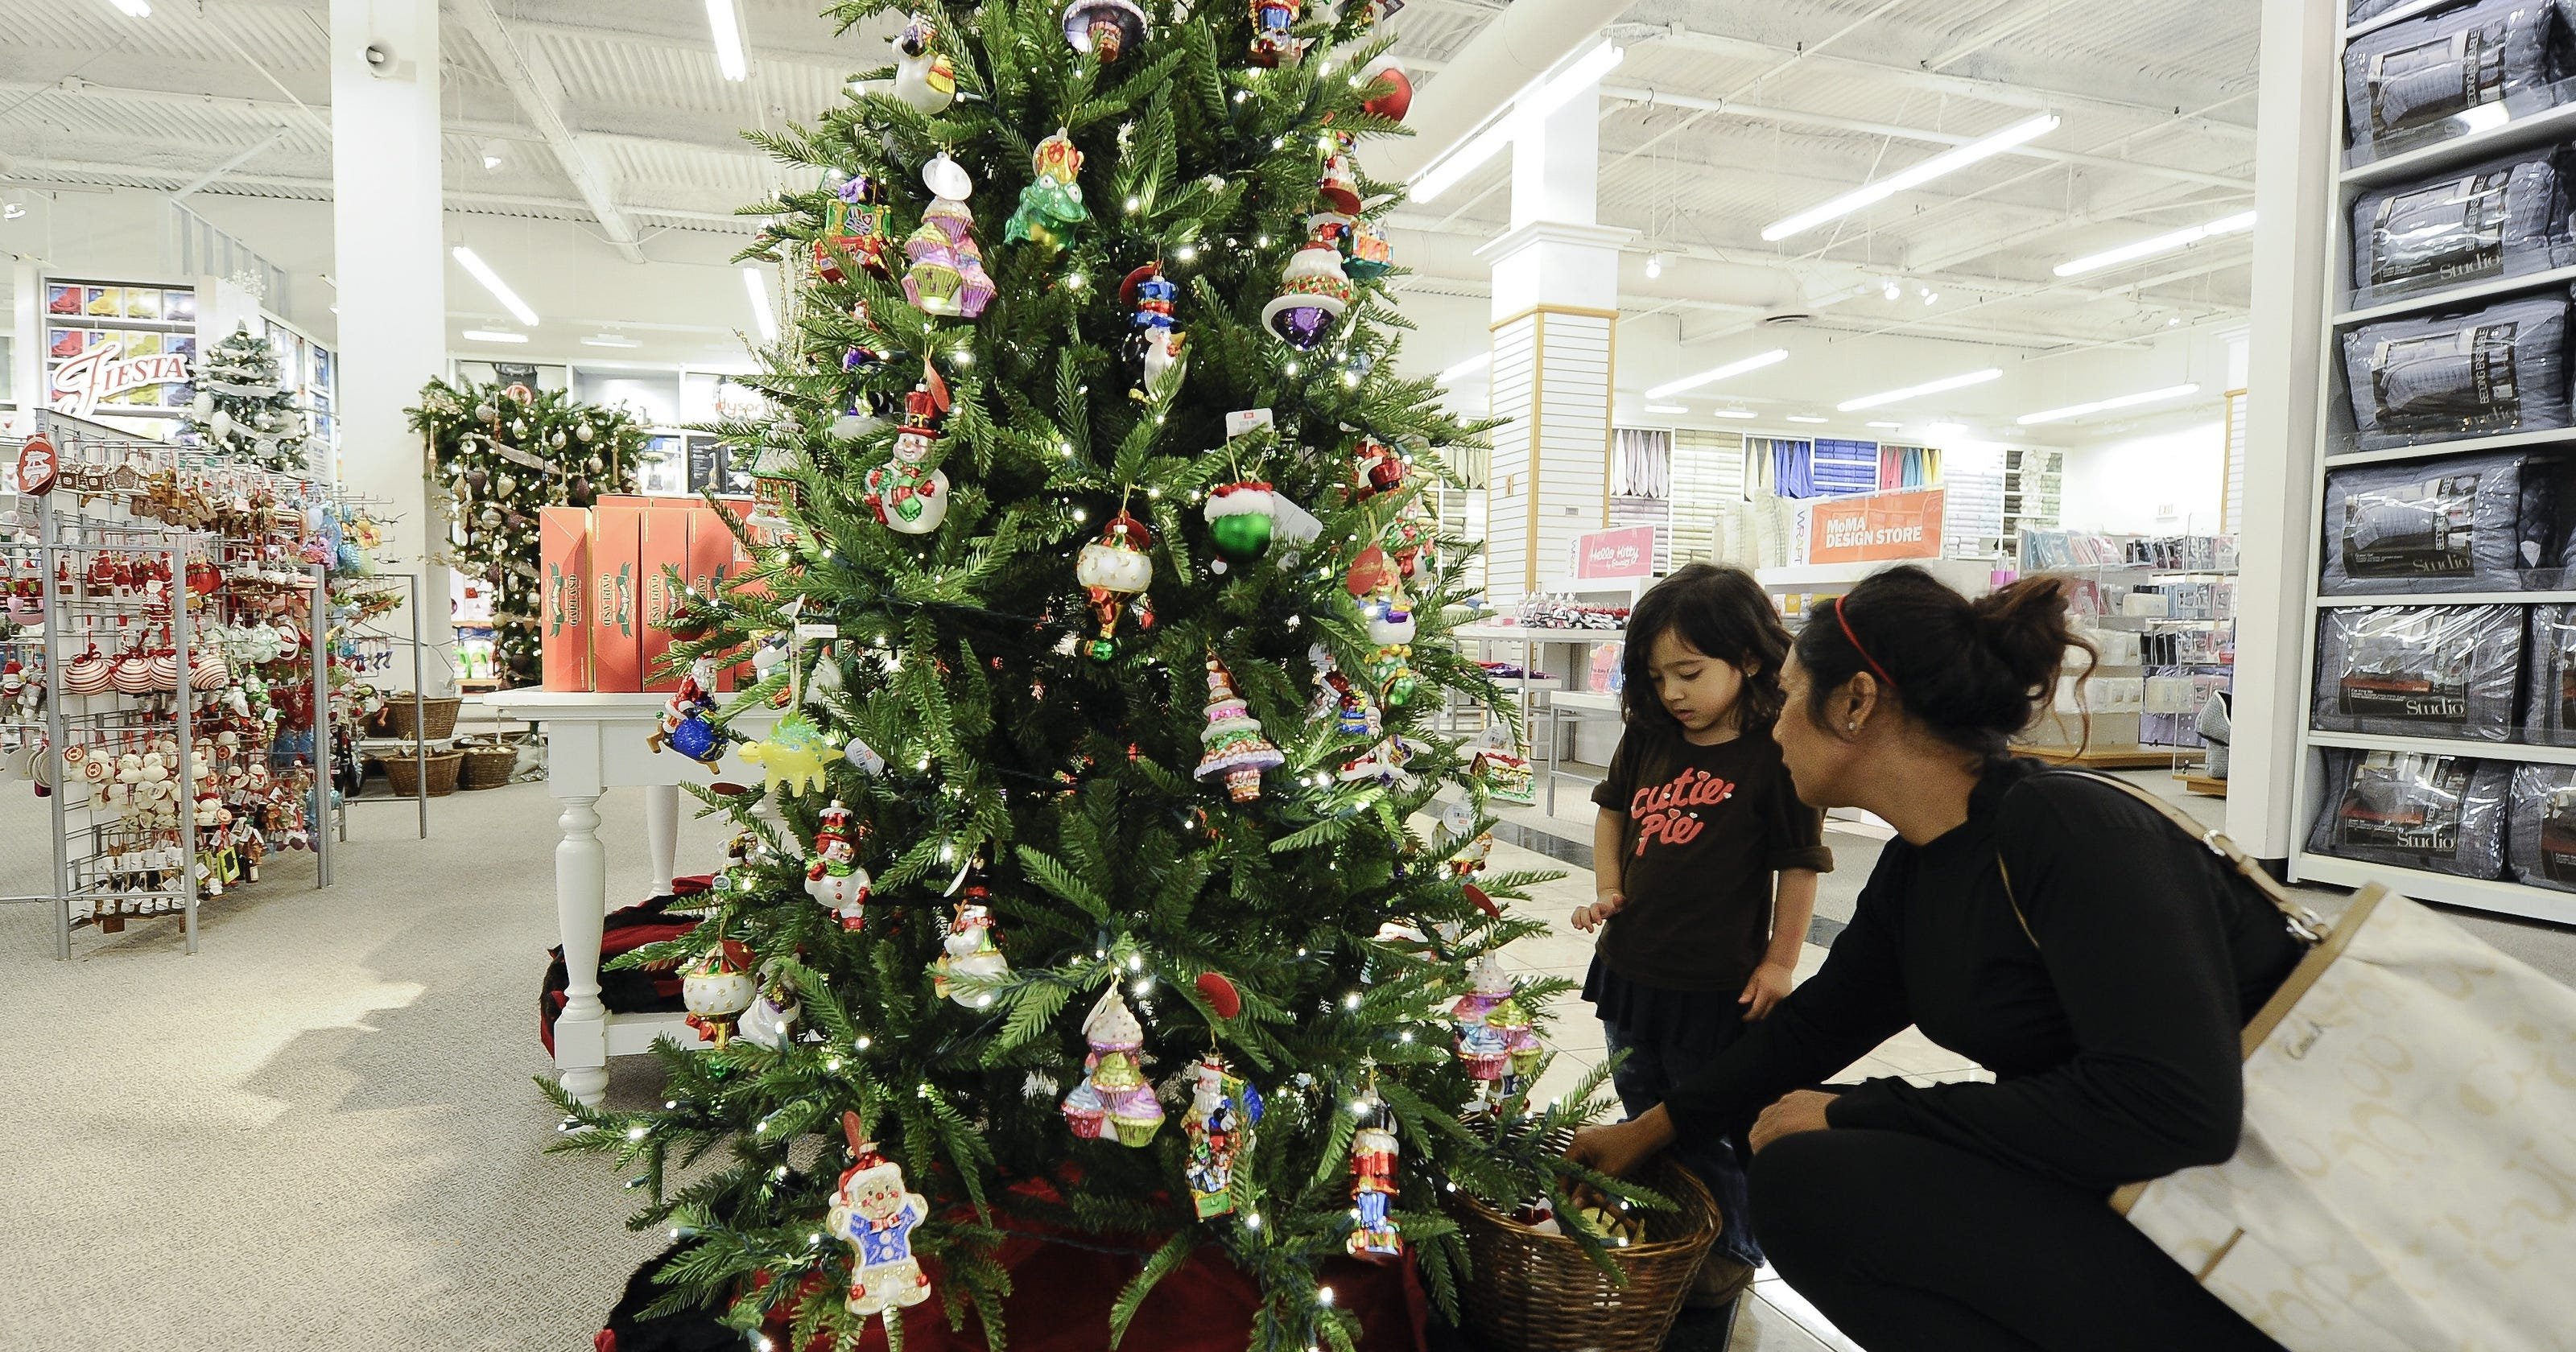 jc penney says holiday prices will be lowest ever - Jcpenney Christmas Decorations